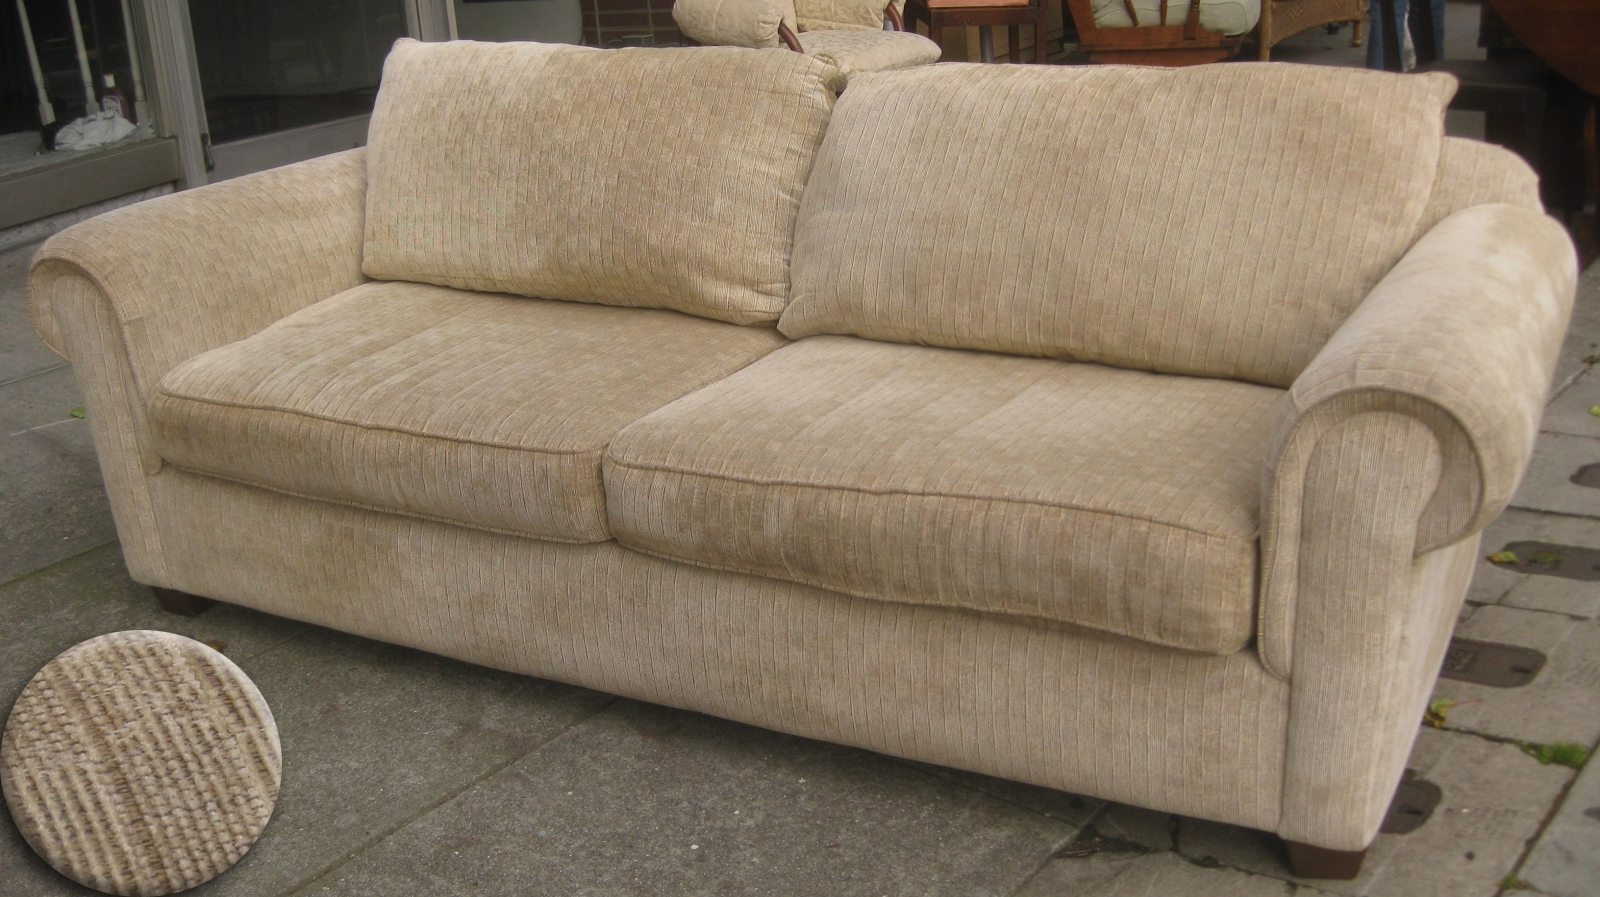 Widely Used Uhuru Furniture & Collectibles: Sold – Soft Sofa – $80 With Regard To Soft Sofas (View 8 of 15)